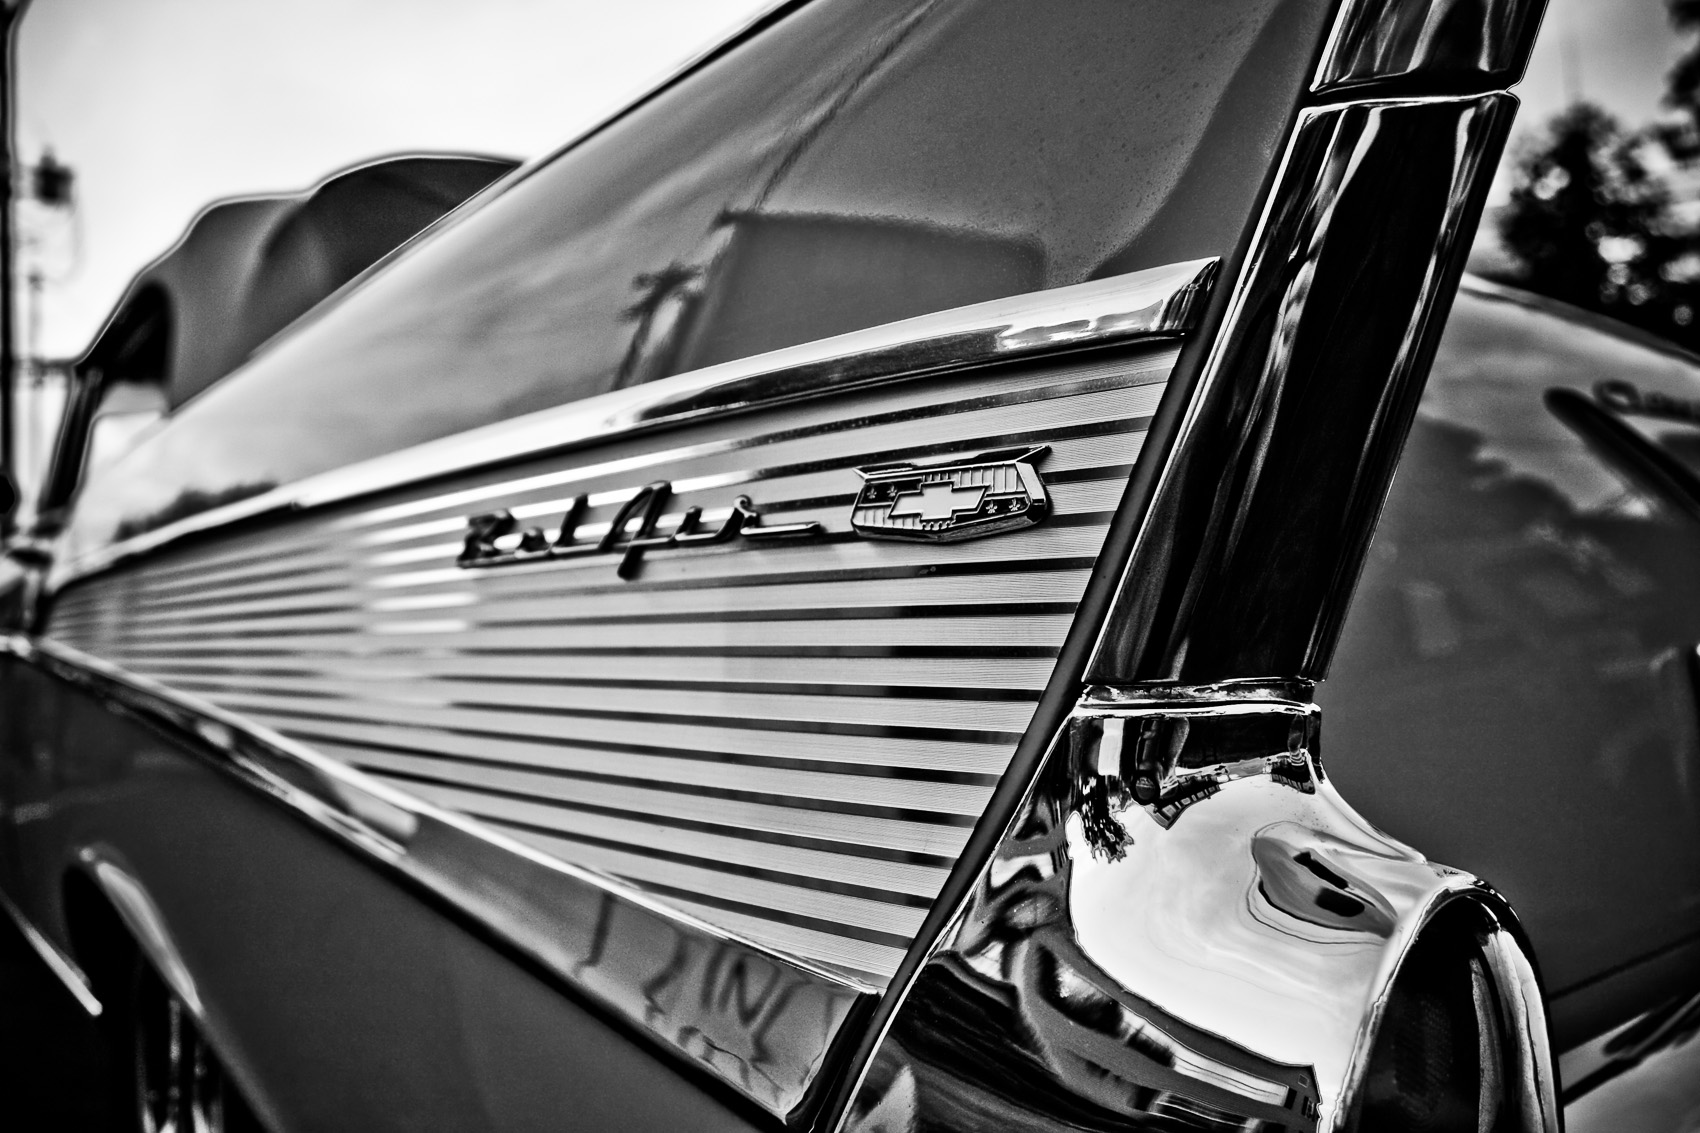 Detail of a Vintage 57 Chevy Bel Air | J. Eldon Zimmerman Photography | Lancaster, PA Commercial Photographer